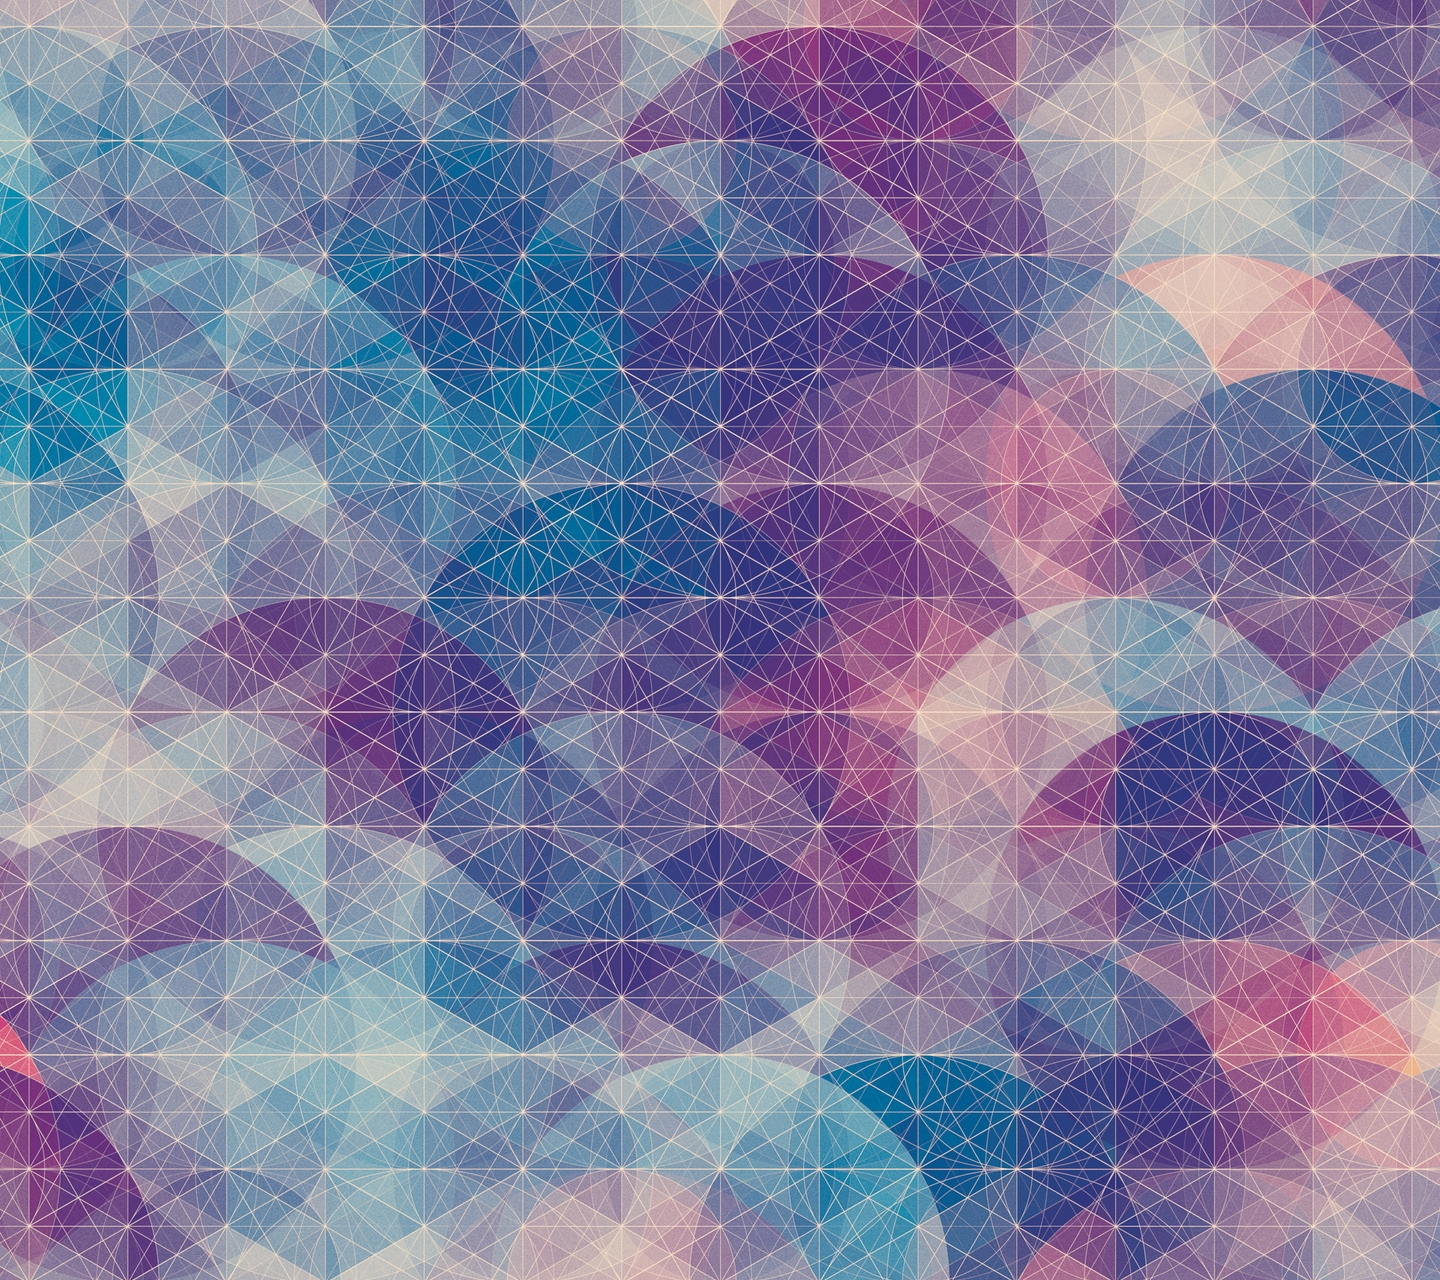 Download free simple hd pattern clipart ppt backgrounds simple hd pattern clipart ppt backgrounds download background original voltagebd Images